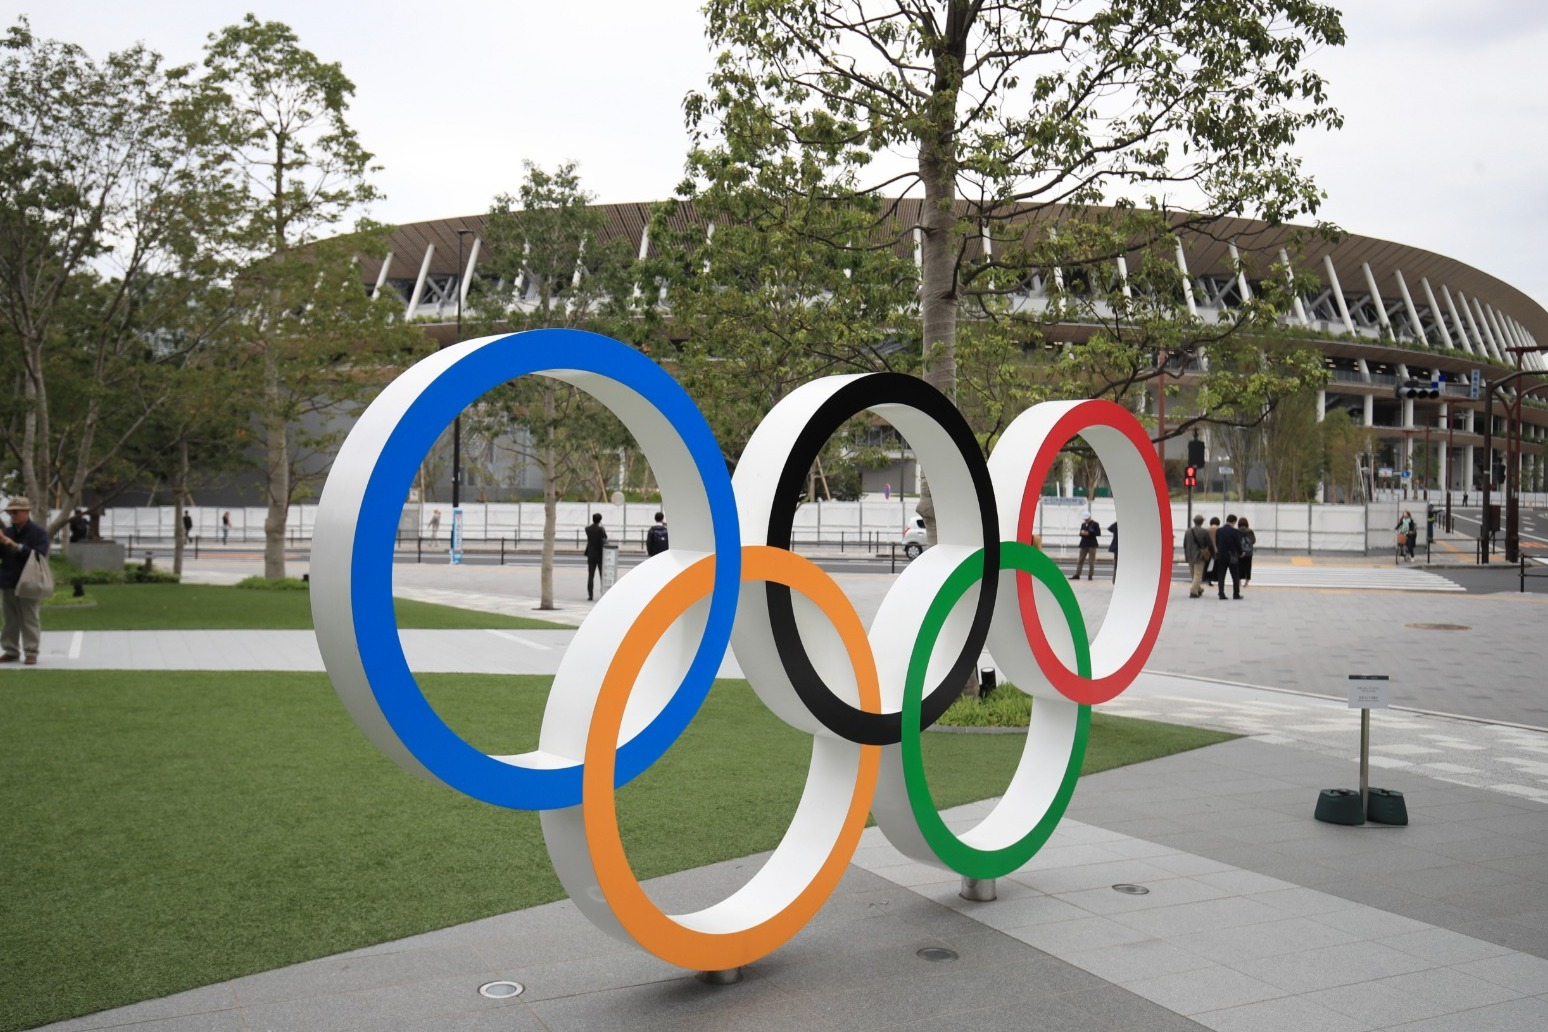 Tokyo to host Olympics under Covid-19 state of emergency